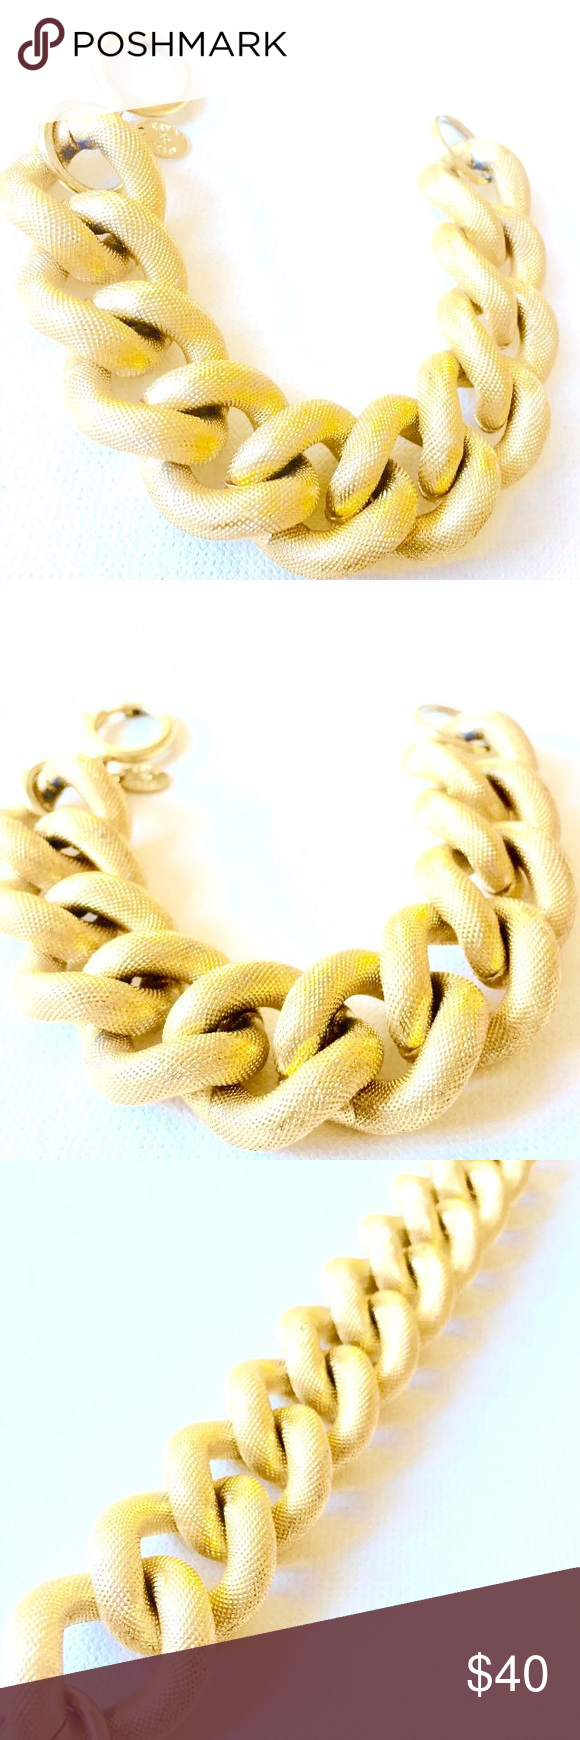 Erwin pearl gold plated chunky link bracelet